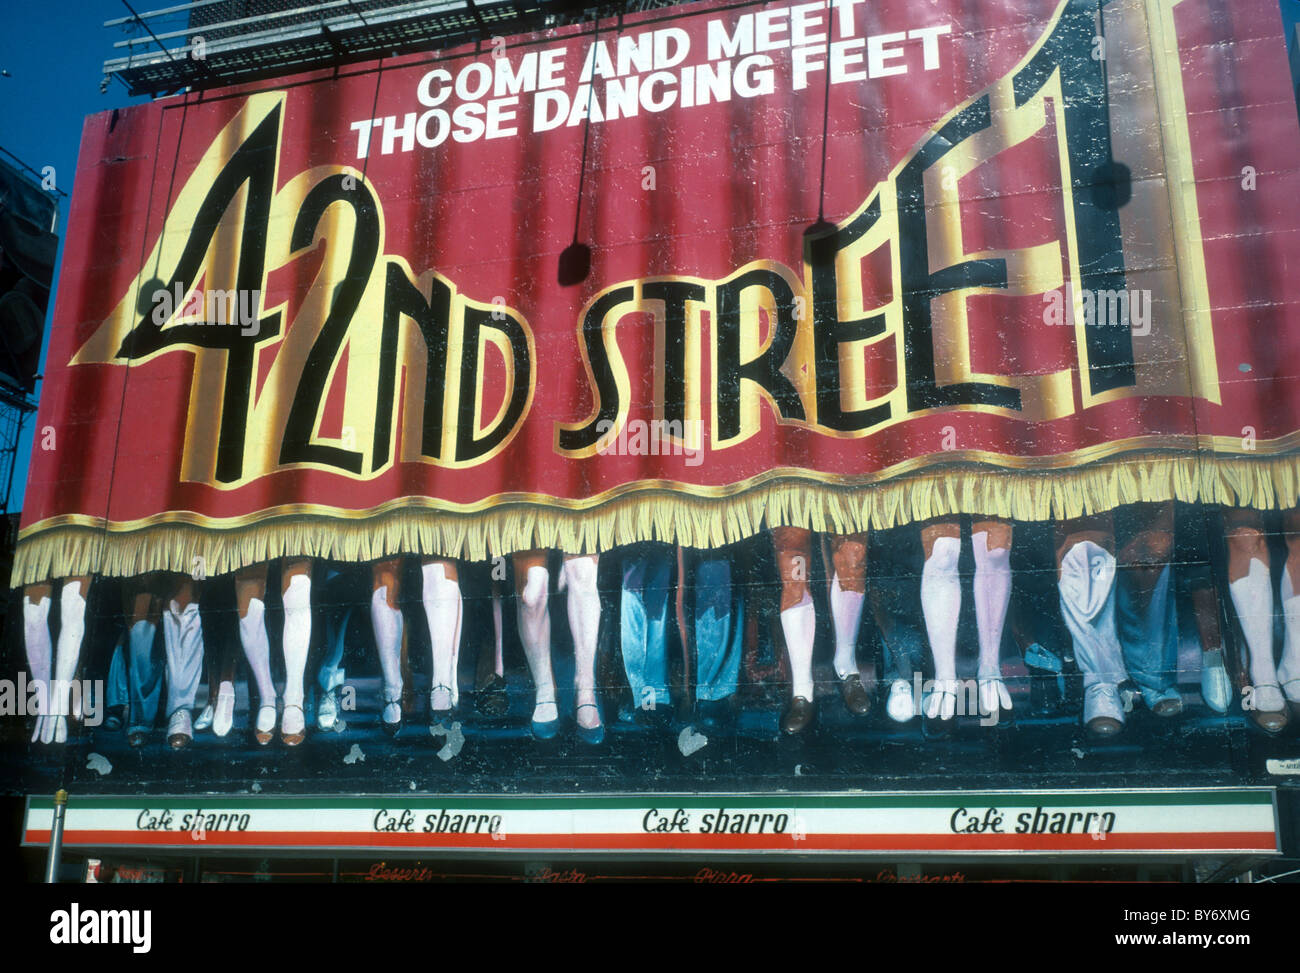 A billboard advertising the Broadway musical 42nd Street is seen in Times Square in New York in March, 1986 - Stock Image